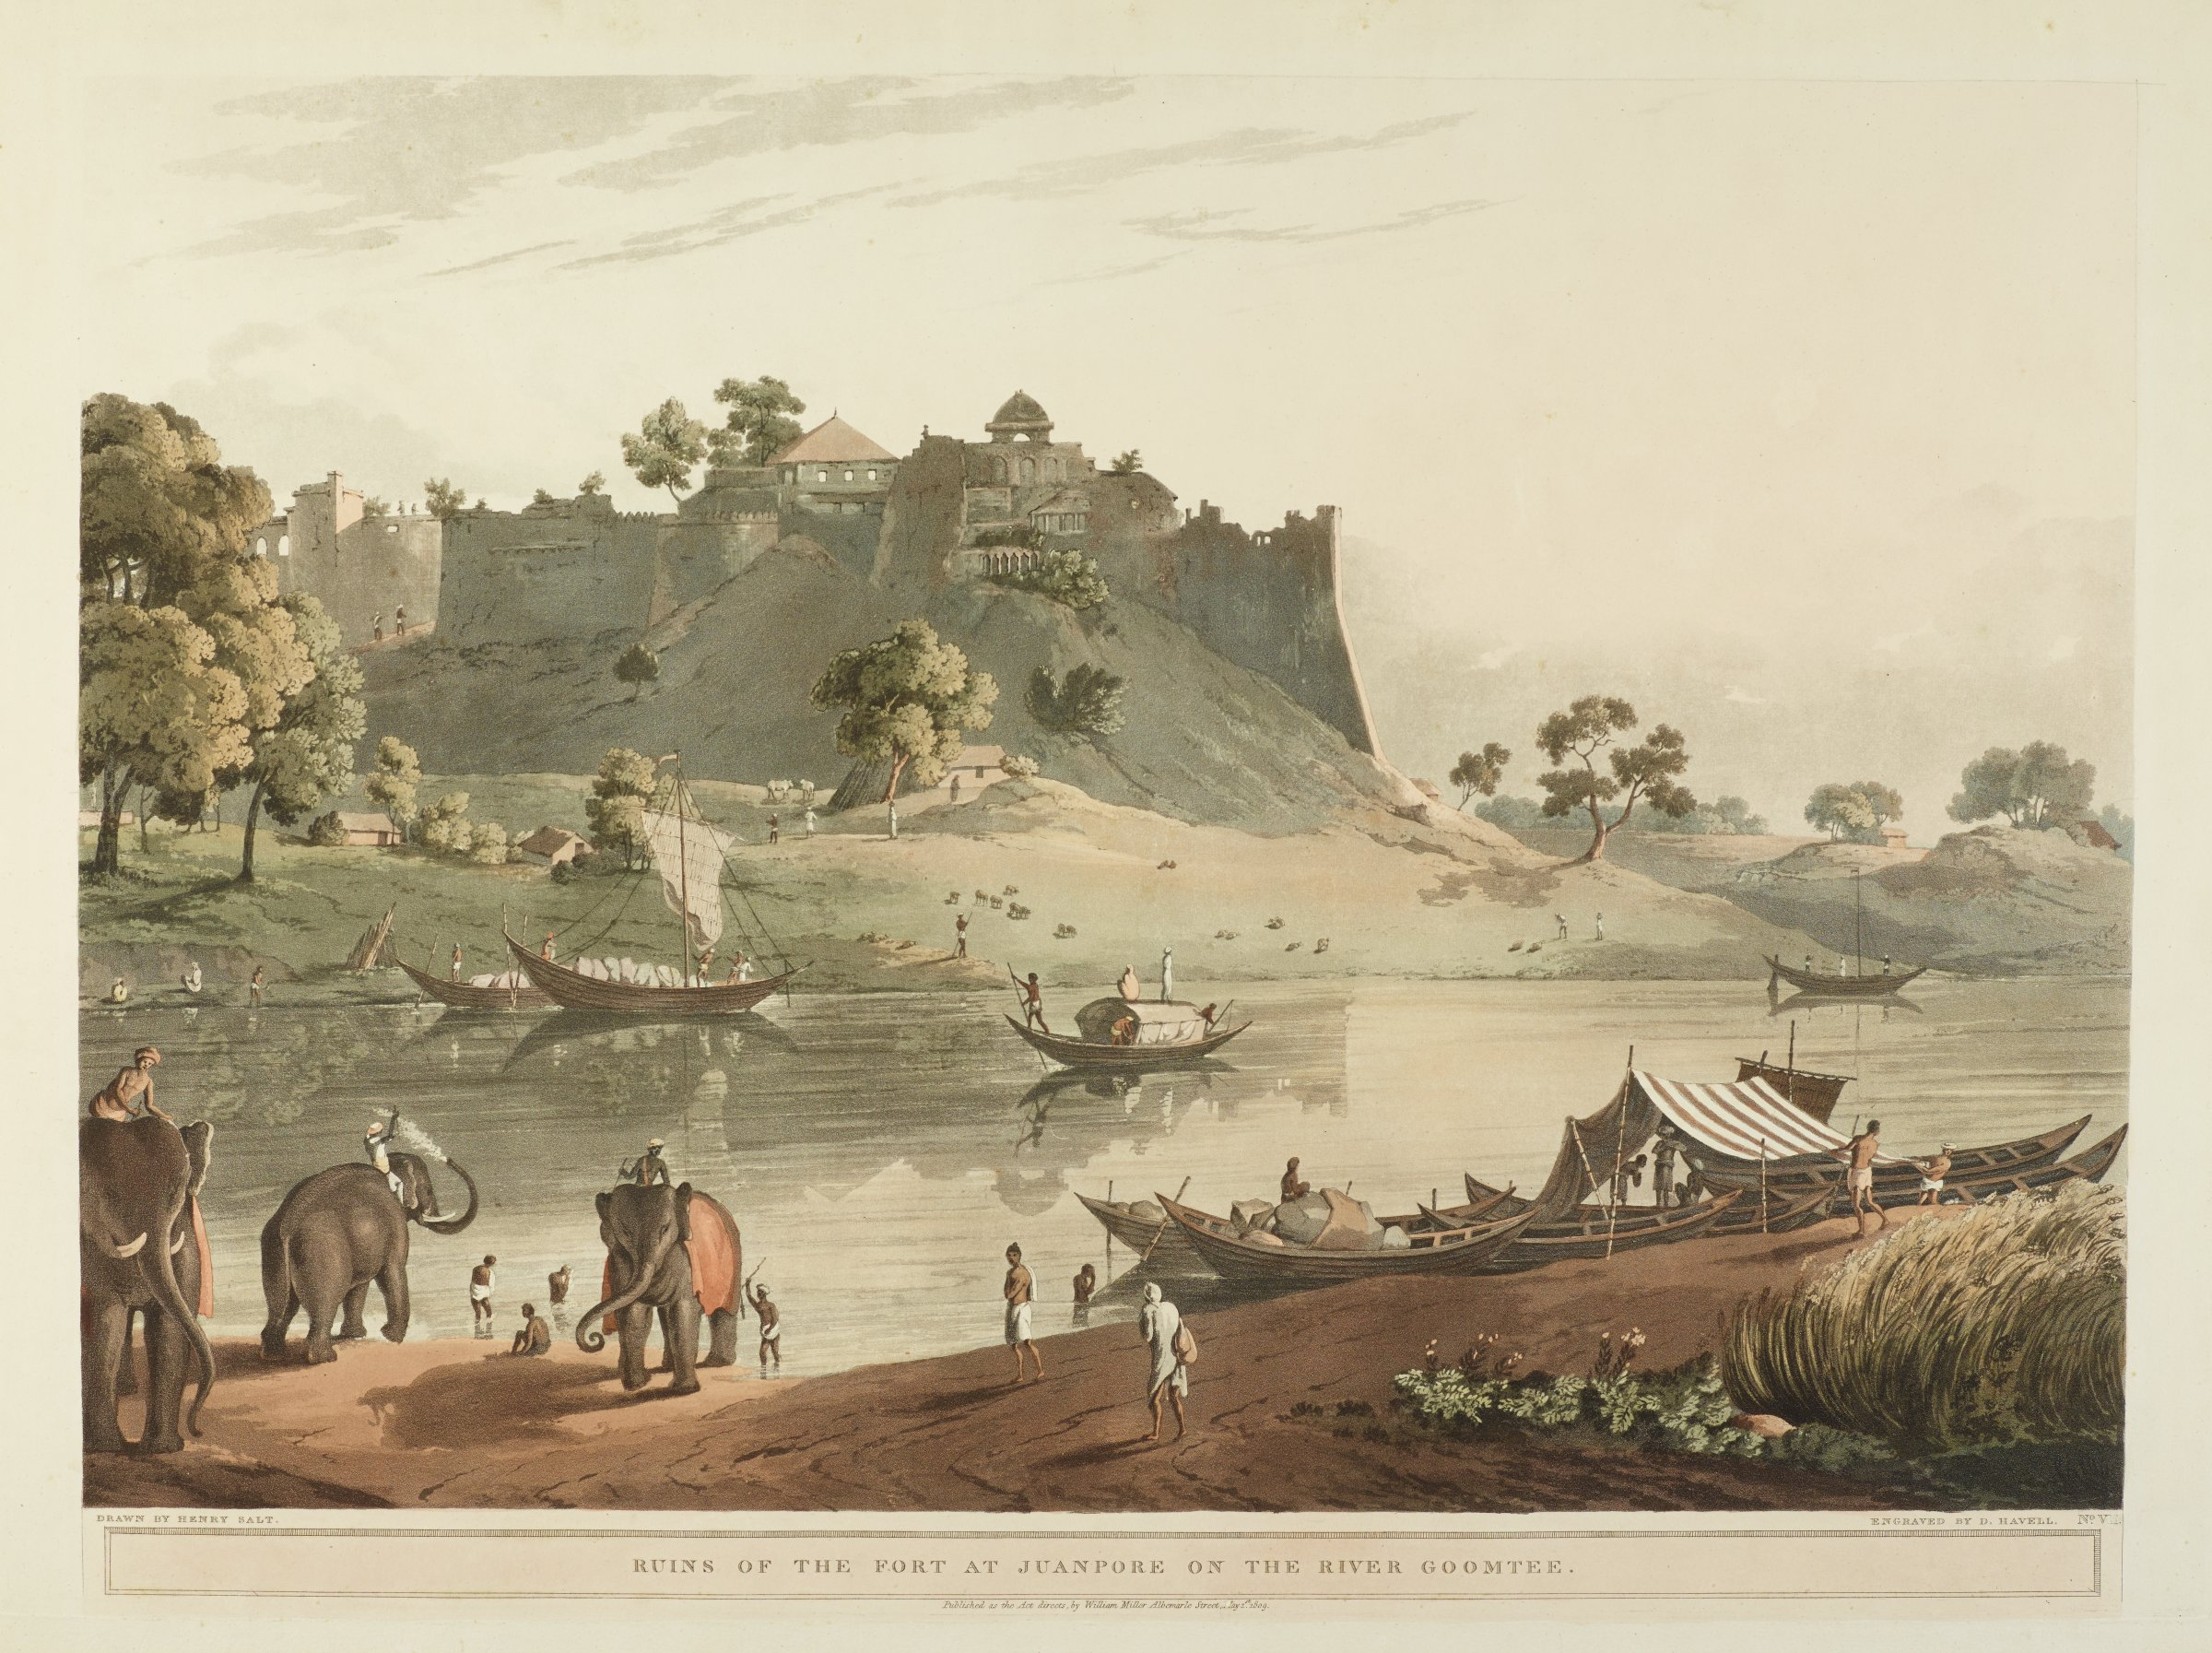 On the bank of a river, boats line the water's edge. Elephants stand on the right. People are scattered throughout the composition. In the background stands the ruins of a fortress.